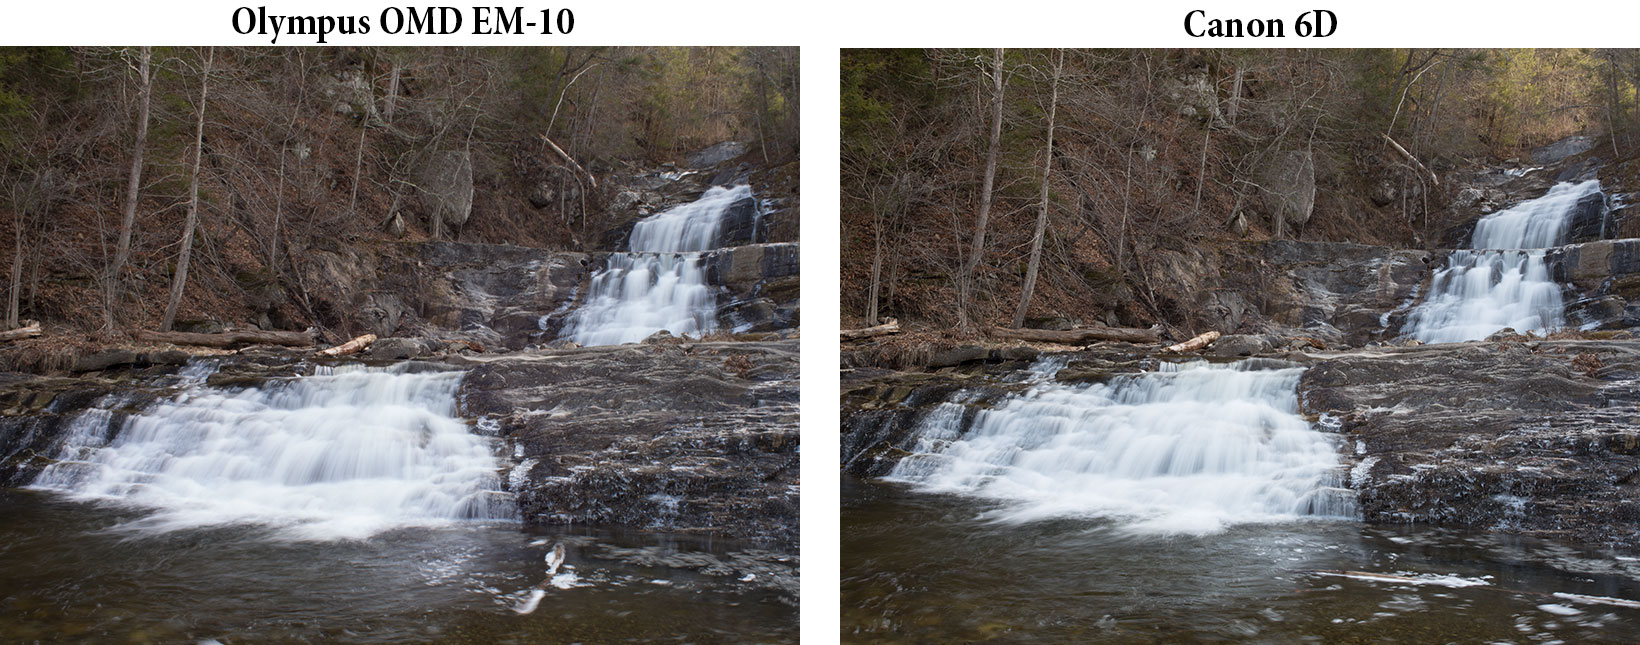 Full Frame Mirrorless Vs Dslr Side By Side Image Comparison Full Frame Dslr Vs Micro